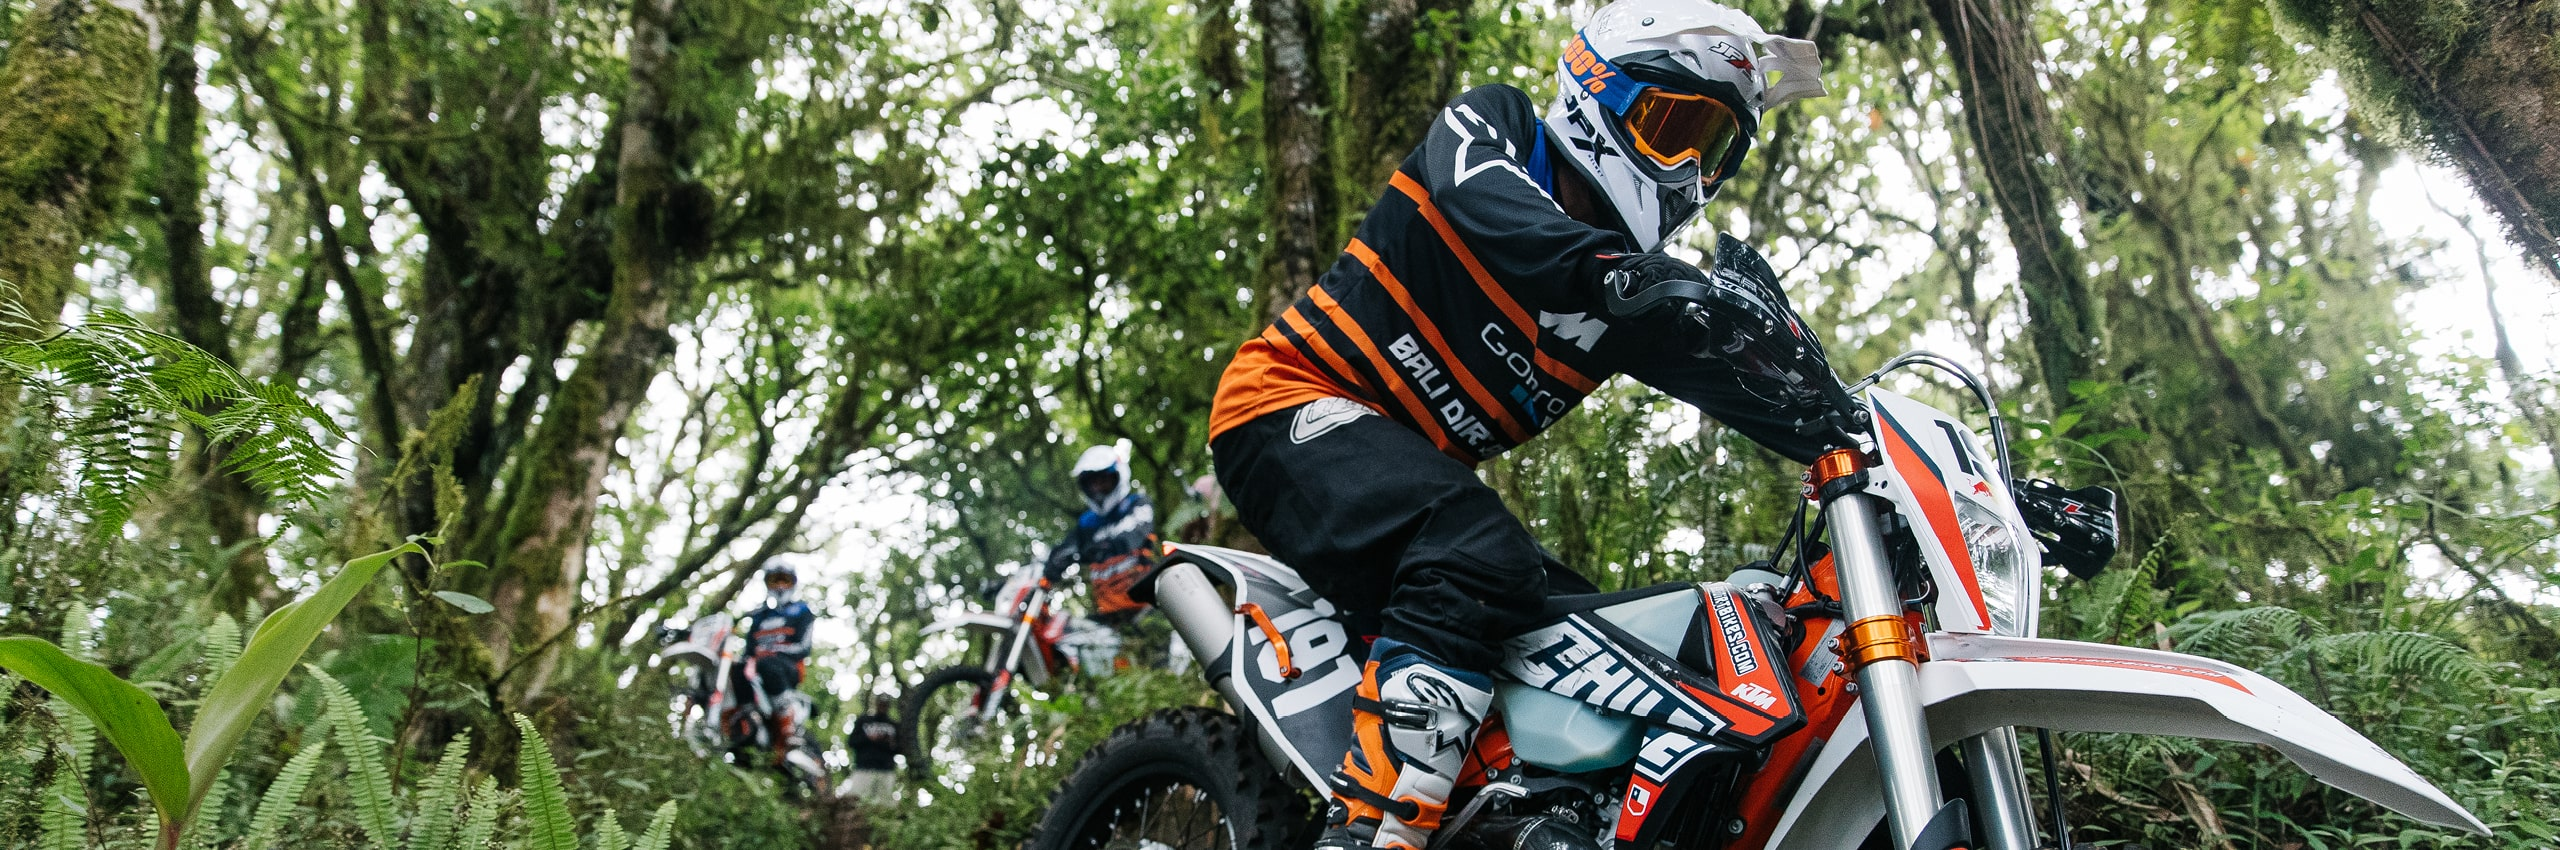 Bali_Dirt_Bikes_Kintamani_Forest_Slider8